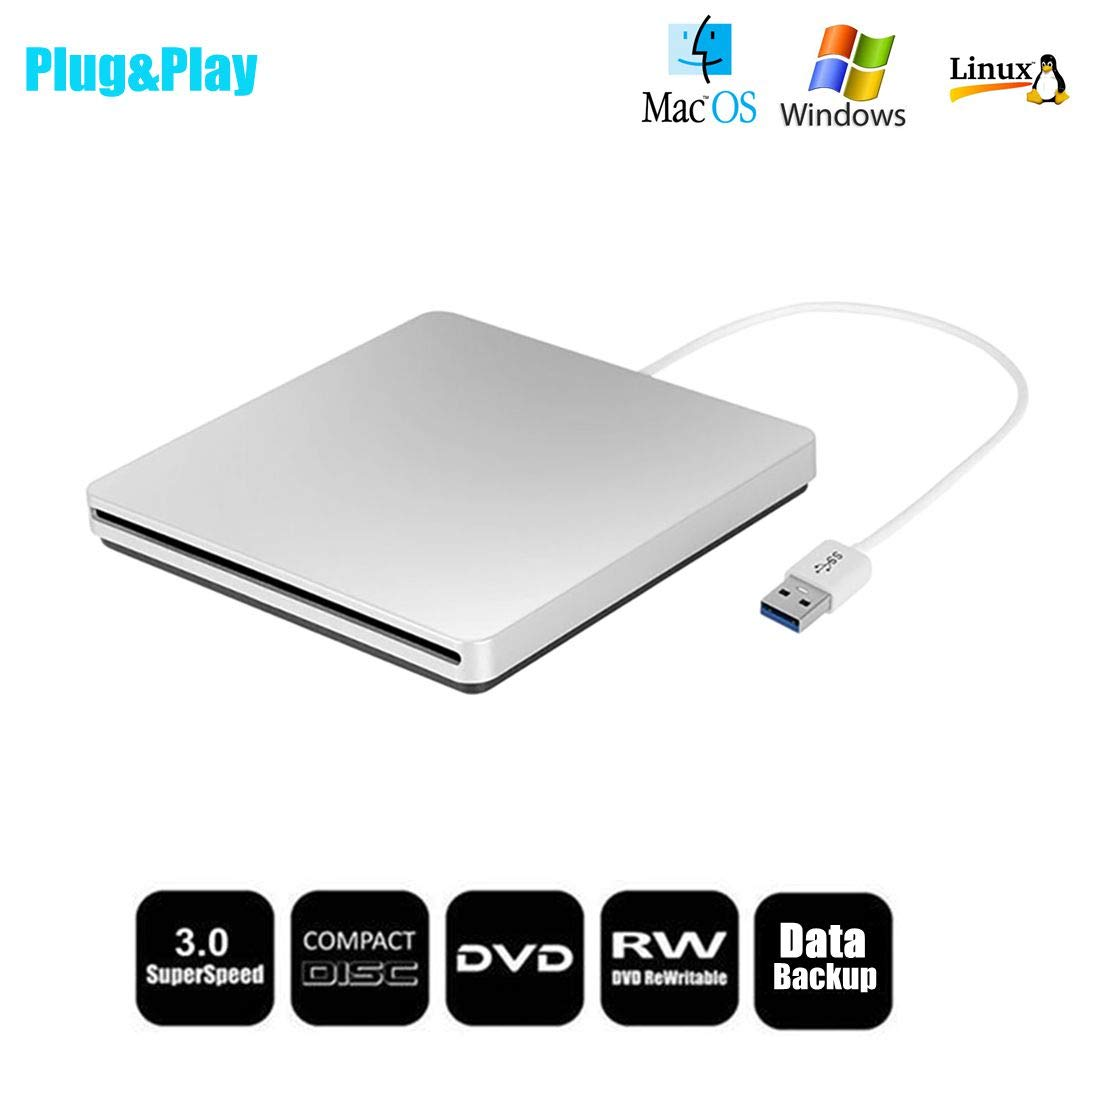 DVD/CD Drive, eTTgear Portable CD Drive External USB 3.0 Suction Type for Laptop PC Mobile Recording Disc Support Window2K/XP/2003/win7/win8/win10/Vista/, Linux, Mac 10 OS System-Silver